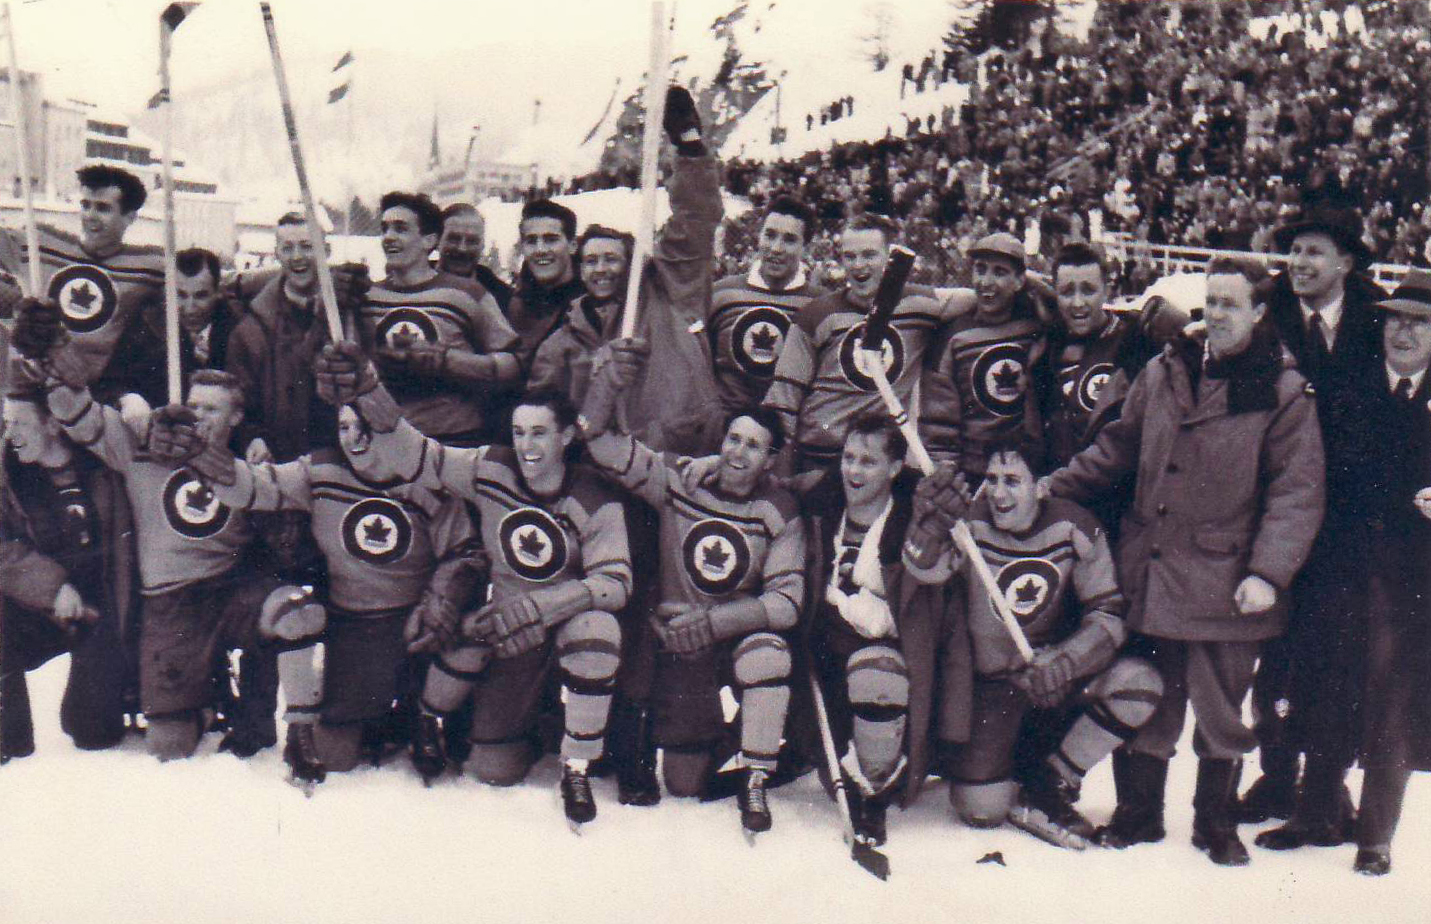 The RCAF Flyers celebrate their Gold Medal win over Switzerland on the outdoor rink at St. Moritz in 1948. Rear row (left to right): André LaPerrière, Hubert Brooks, Andy Gilpin, Ted Hibberd, A. Sydney Dawes, head of the Canadian Olympics Association, Pete Leichnitz, Irving Taylor, Wally Halder, George Mara, Murray Dowey, George McFaul, Frank Boucher, Sandy Watson, and George Dudley, head of the Canadian Amateur Hockey Association. Kneeling in front (left to right): Roy Forbes, Orville Gravelle, Reg Schroeter, Ab Renaud, Patsy Guzzo, Louis Lecompte and Frank Dunster.